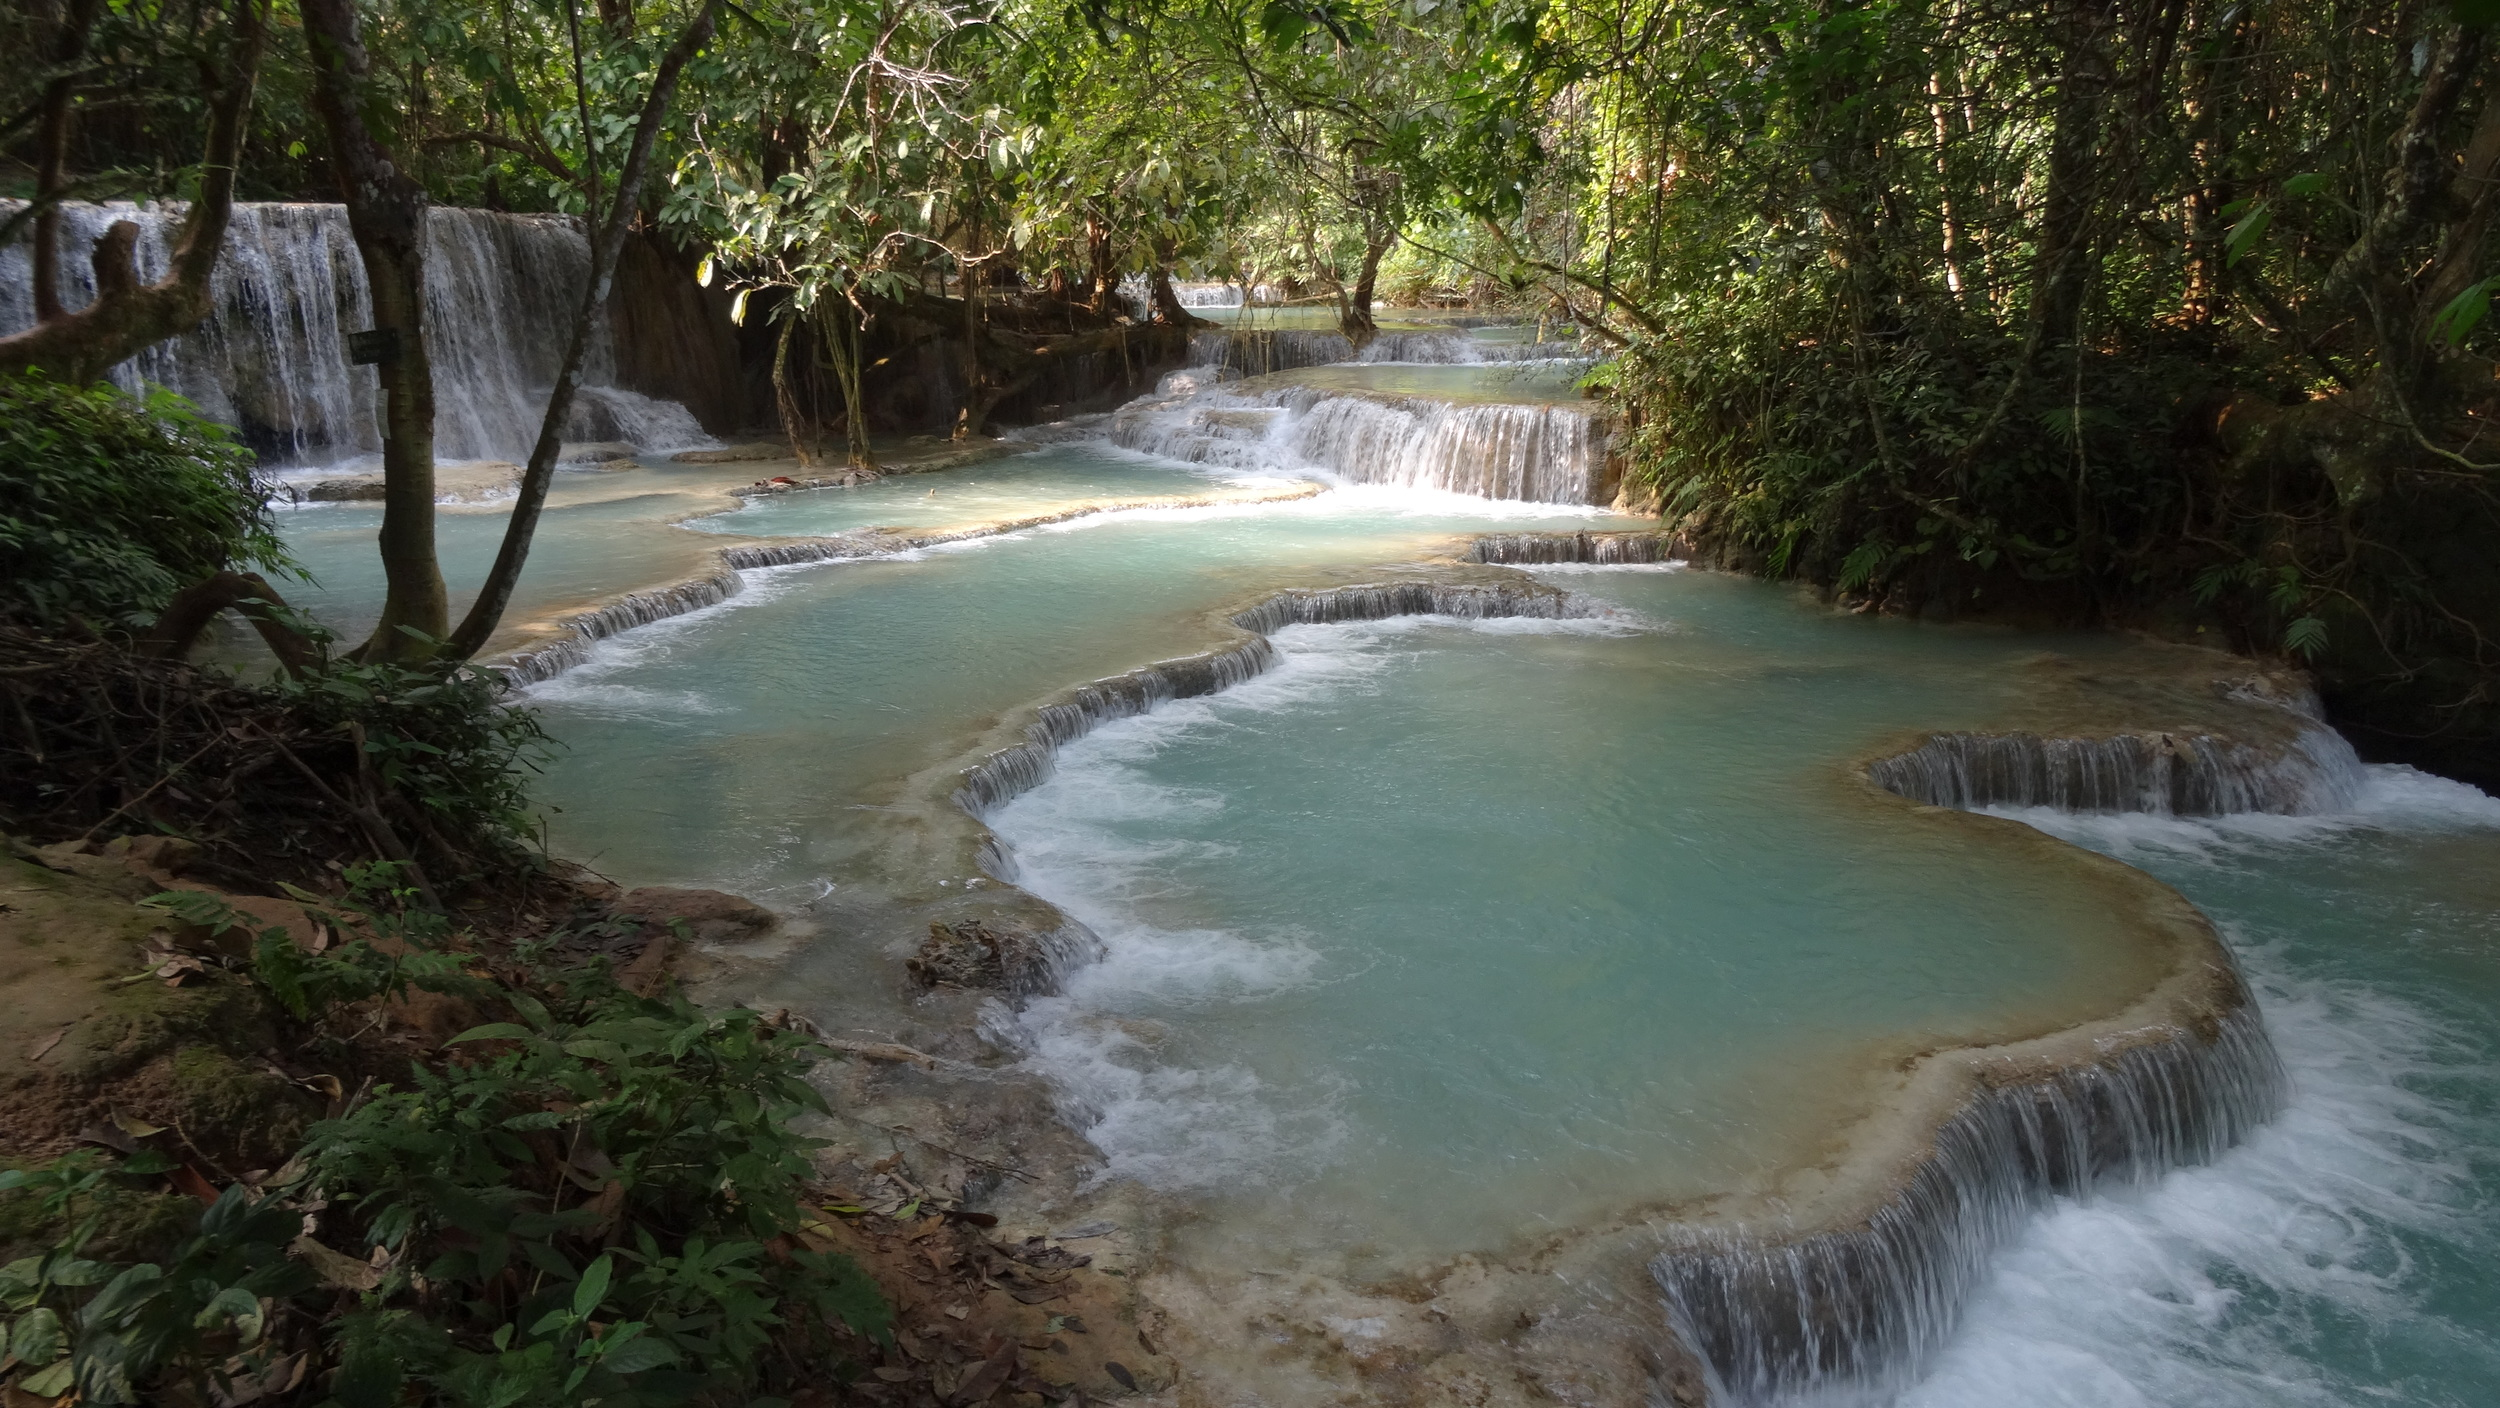 Kouangxi Water Fall, Luang Prabang, Laos. One of the most magical places I've been.